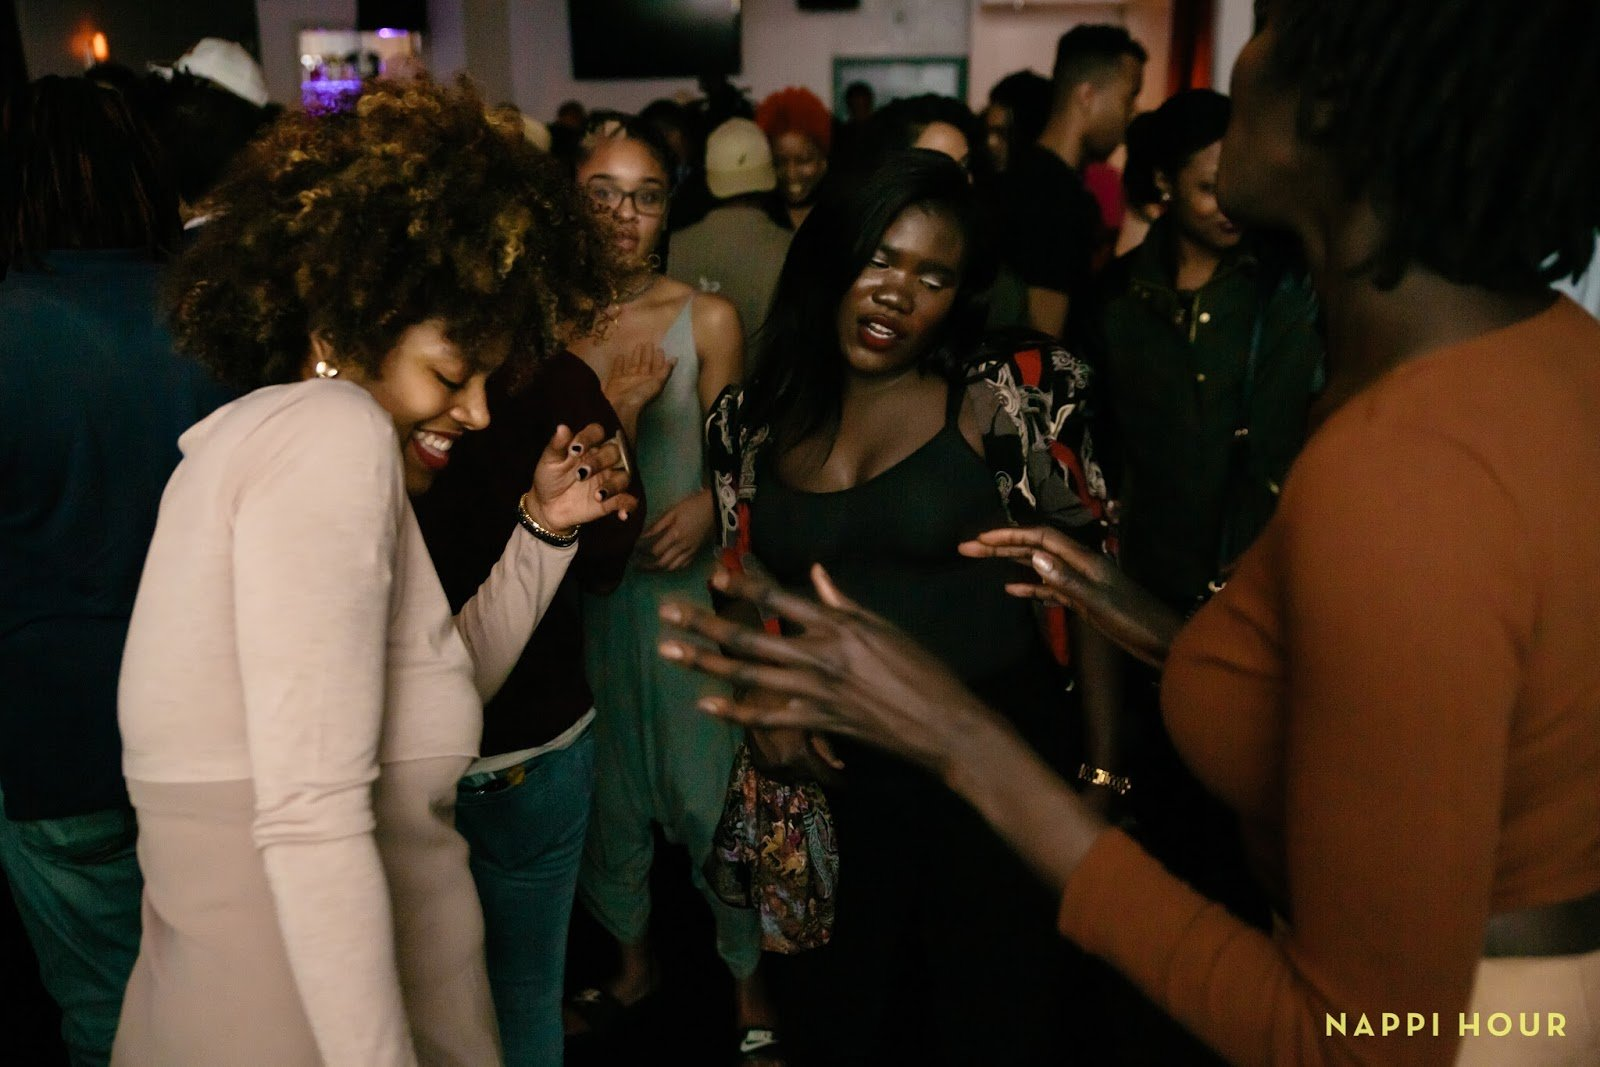 How Nappi Hour Is Changing The Black Happy Hour Scene in Chicago